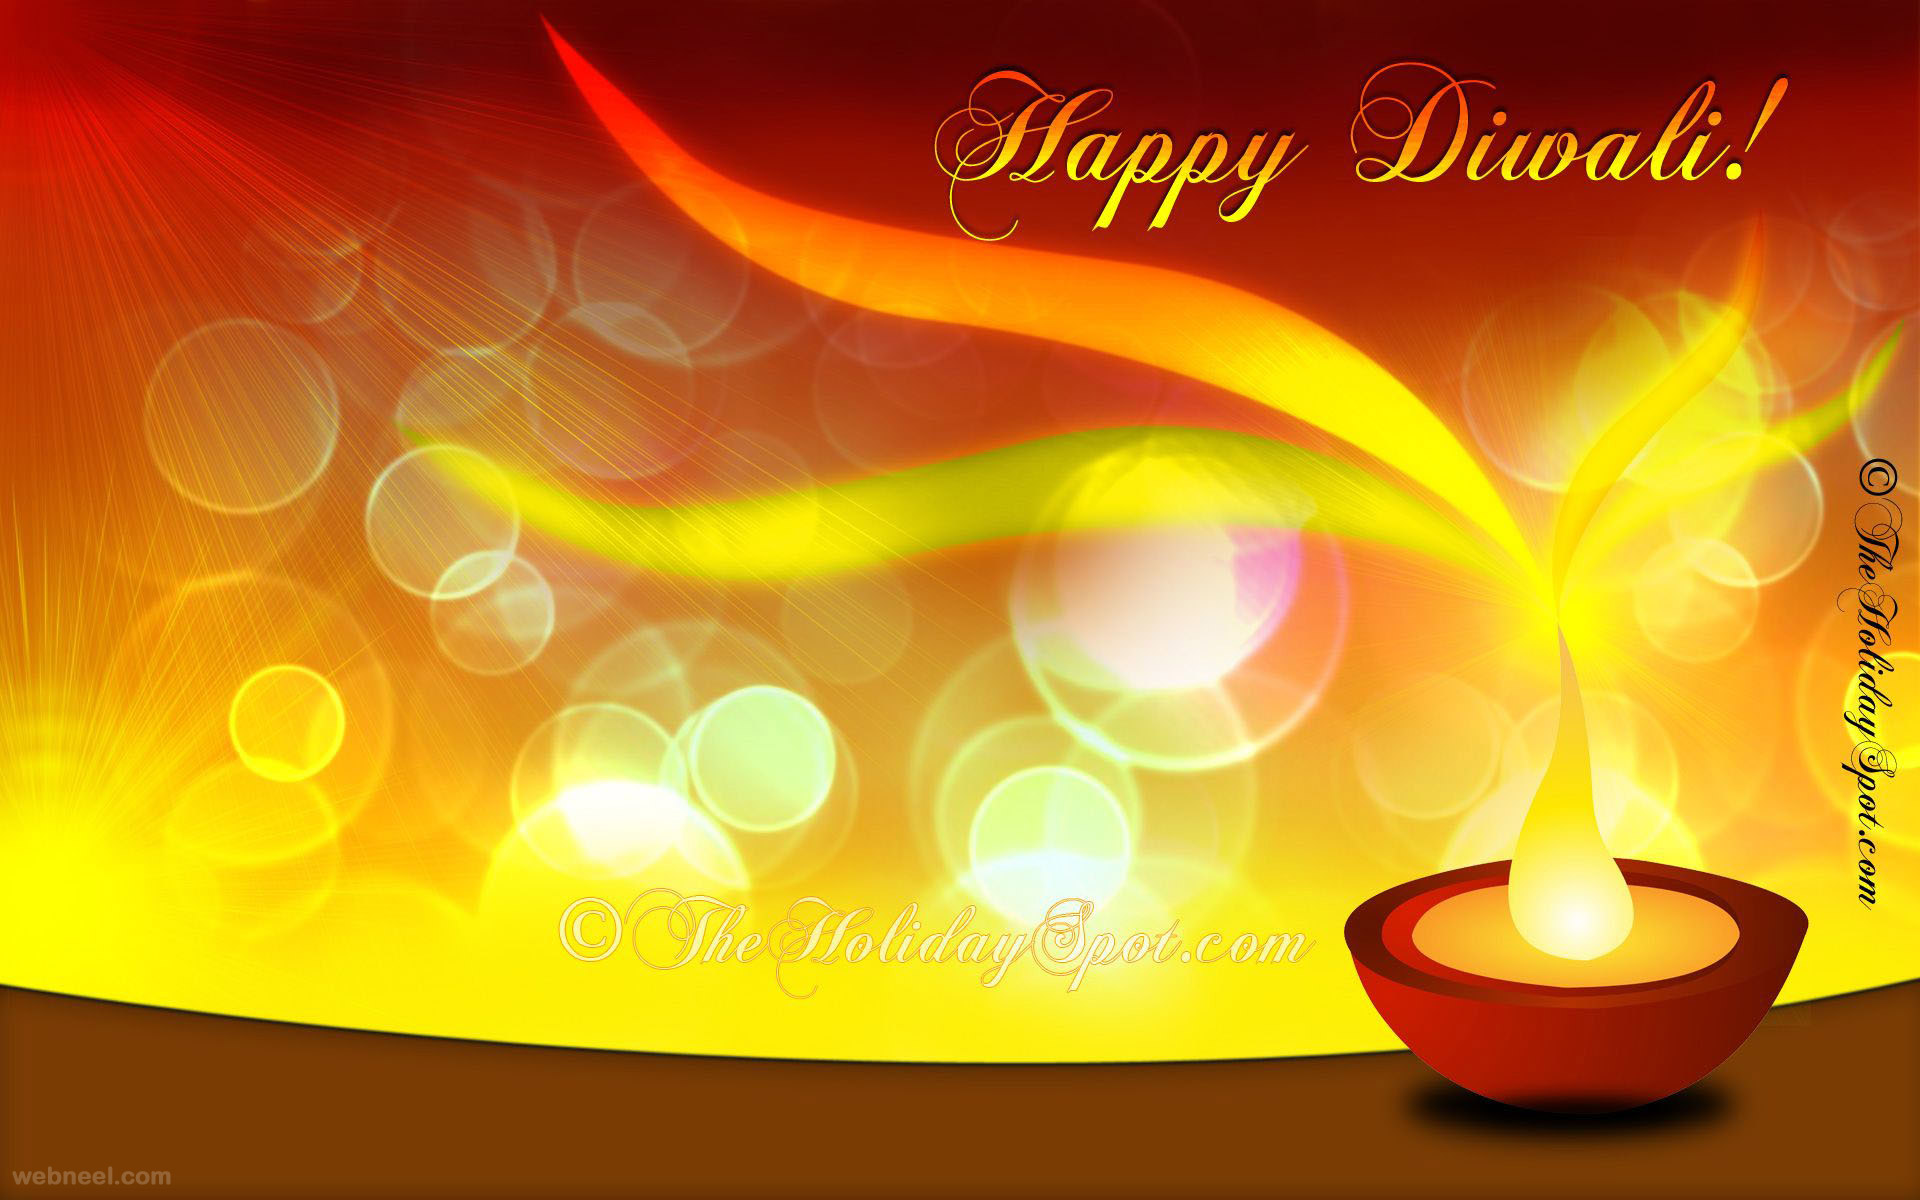 50 Beautiful Diwali Greeting Cards Designs For You Part 2